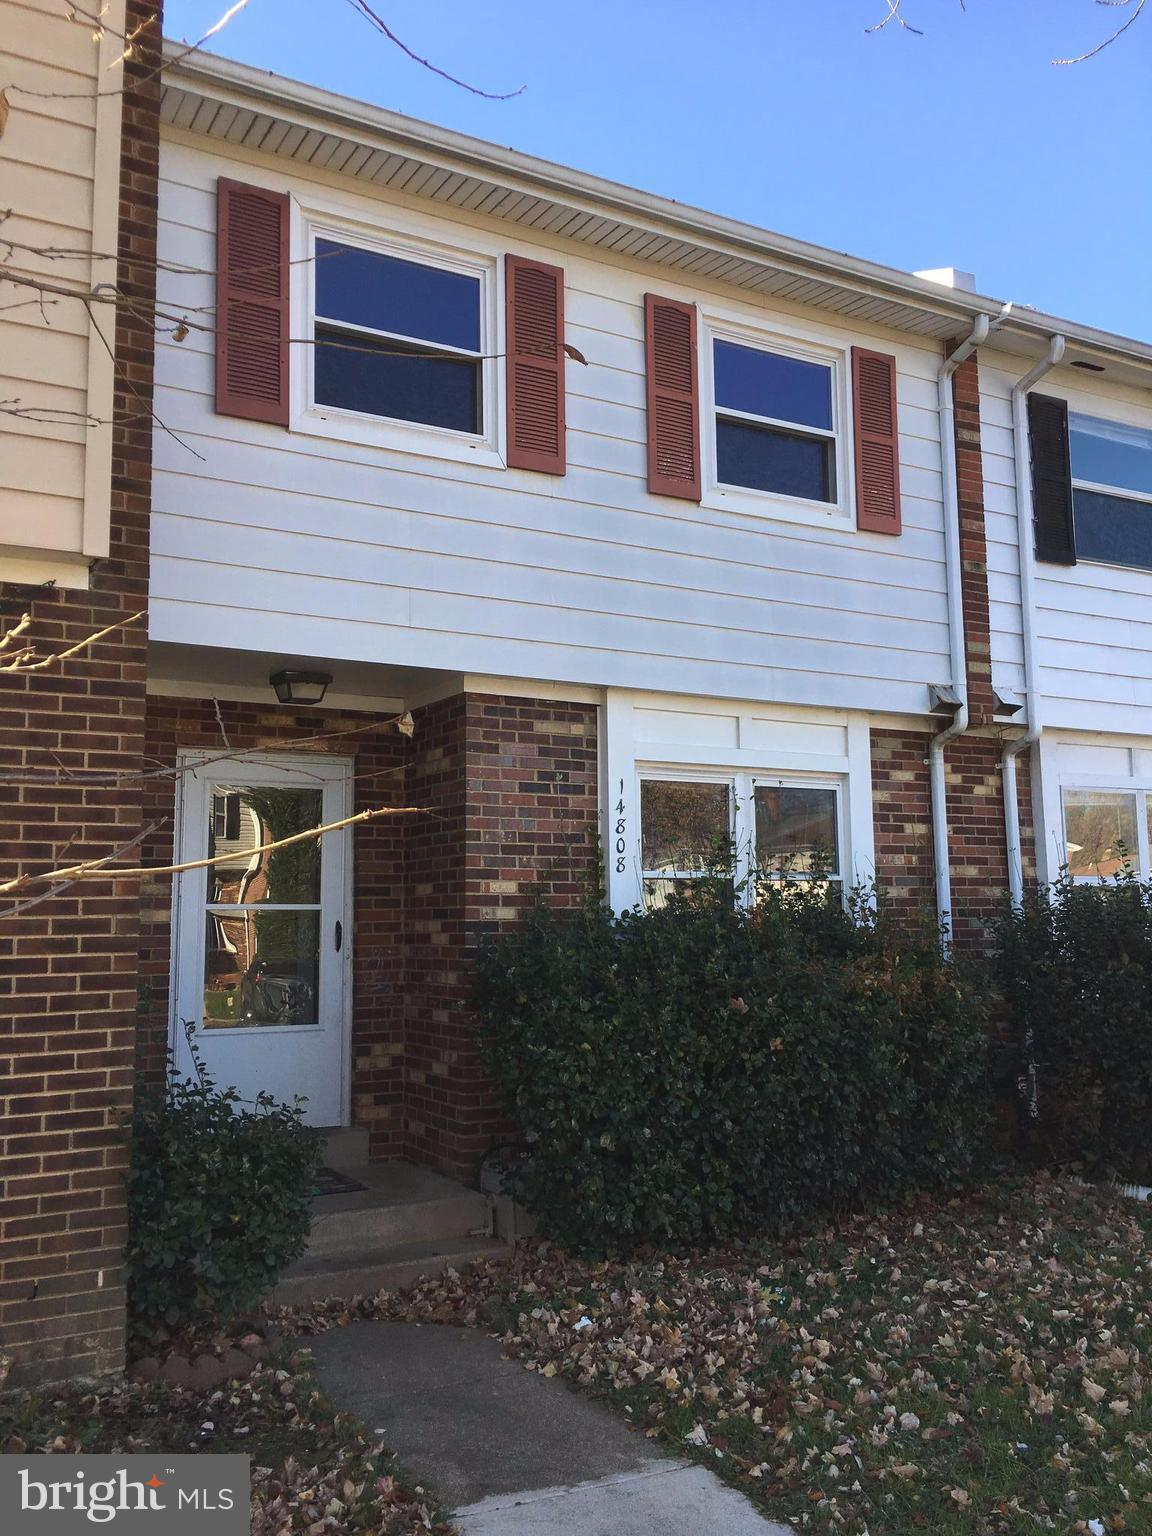 LOVELY TOWNHOME FEATURES PARTIAL BRICK FRONT, 2 LEVELS, 3 BEDROOMS, 2.5 BATHS, FULLY FENCED BACKYARD W/ PATIO & SHED. NEWER WATER HEATER, HVAC SYSTEM, VINYL WINDOWS & DISH WASHER. SHORT-SALE. SOLD STRICTLY AS-IS. HOME INSPECTION FOR INFO ONLY. GREAT INVESTMENT OPPORTUNITY.